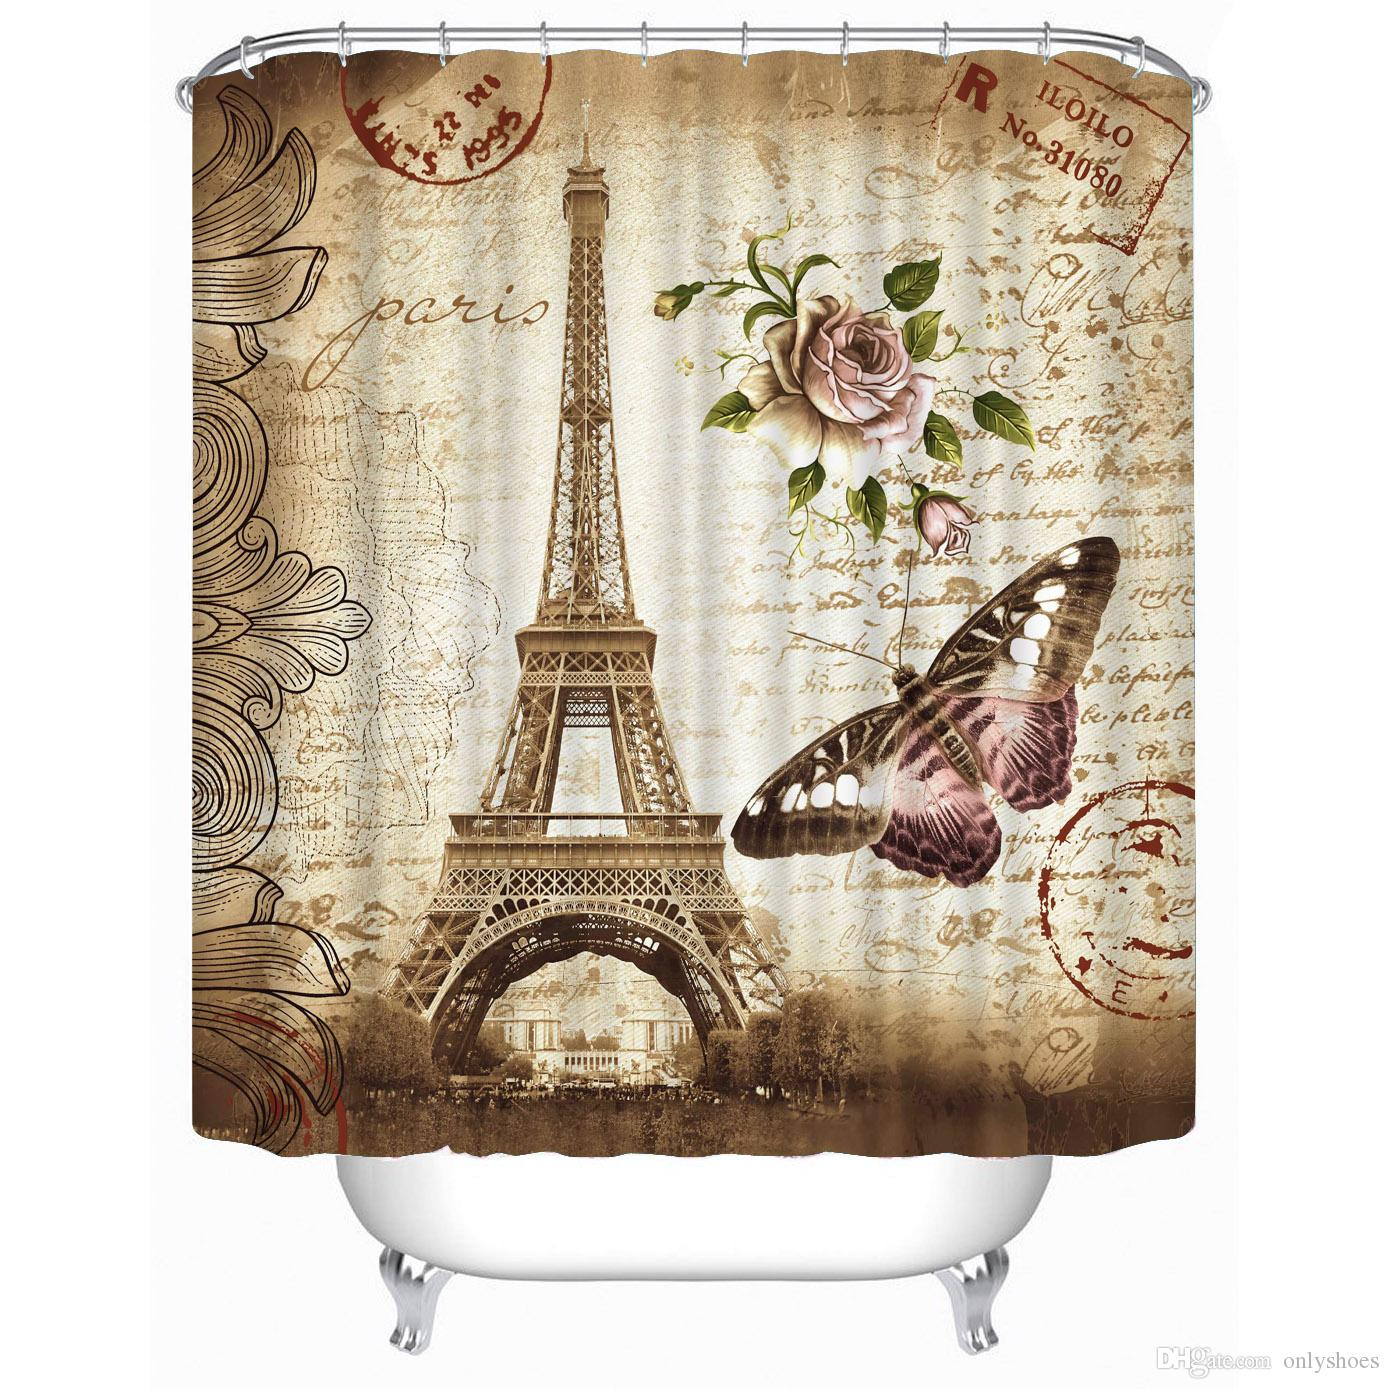 Customs 36 48 60 66 72 80 W X H Inch Shower Curtain Rose Butterfly And Eiffel Waterproof Polyester Fabric Bathroom